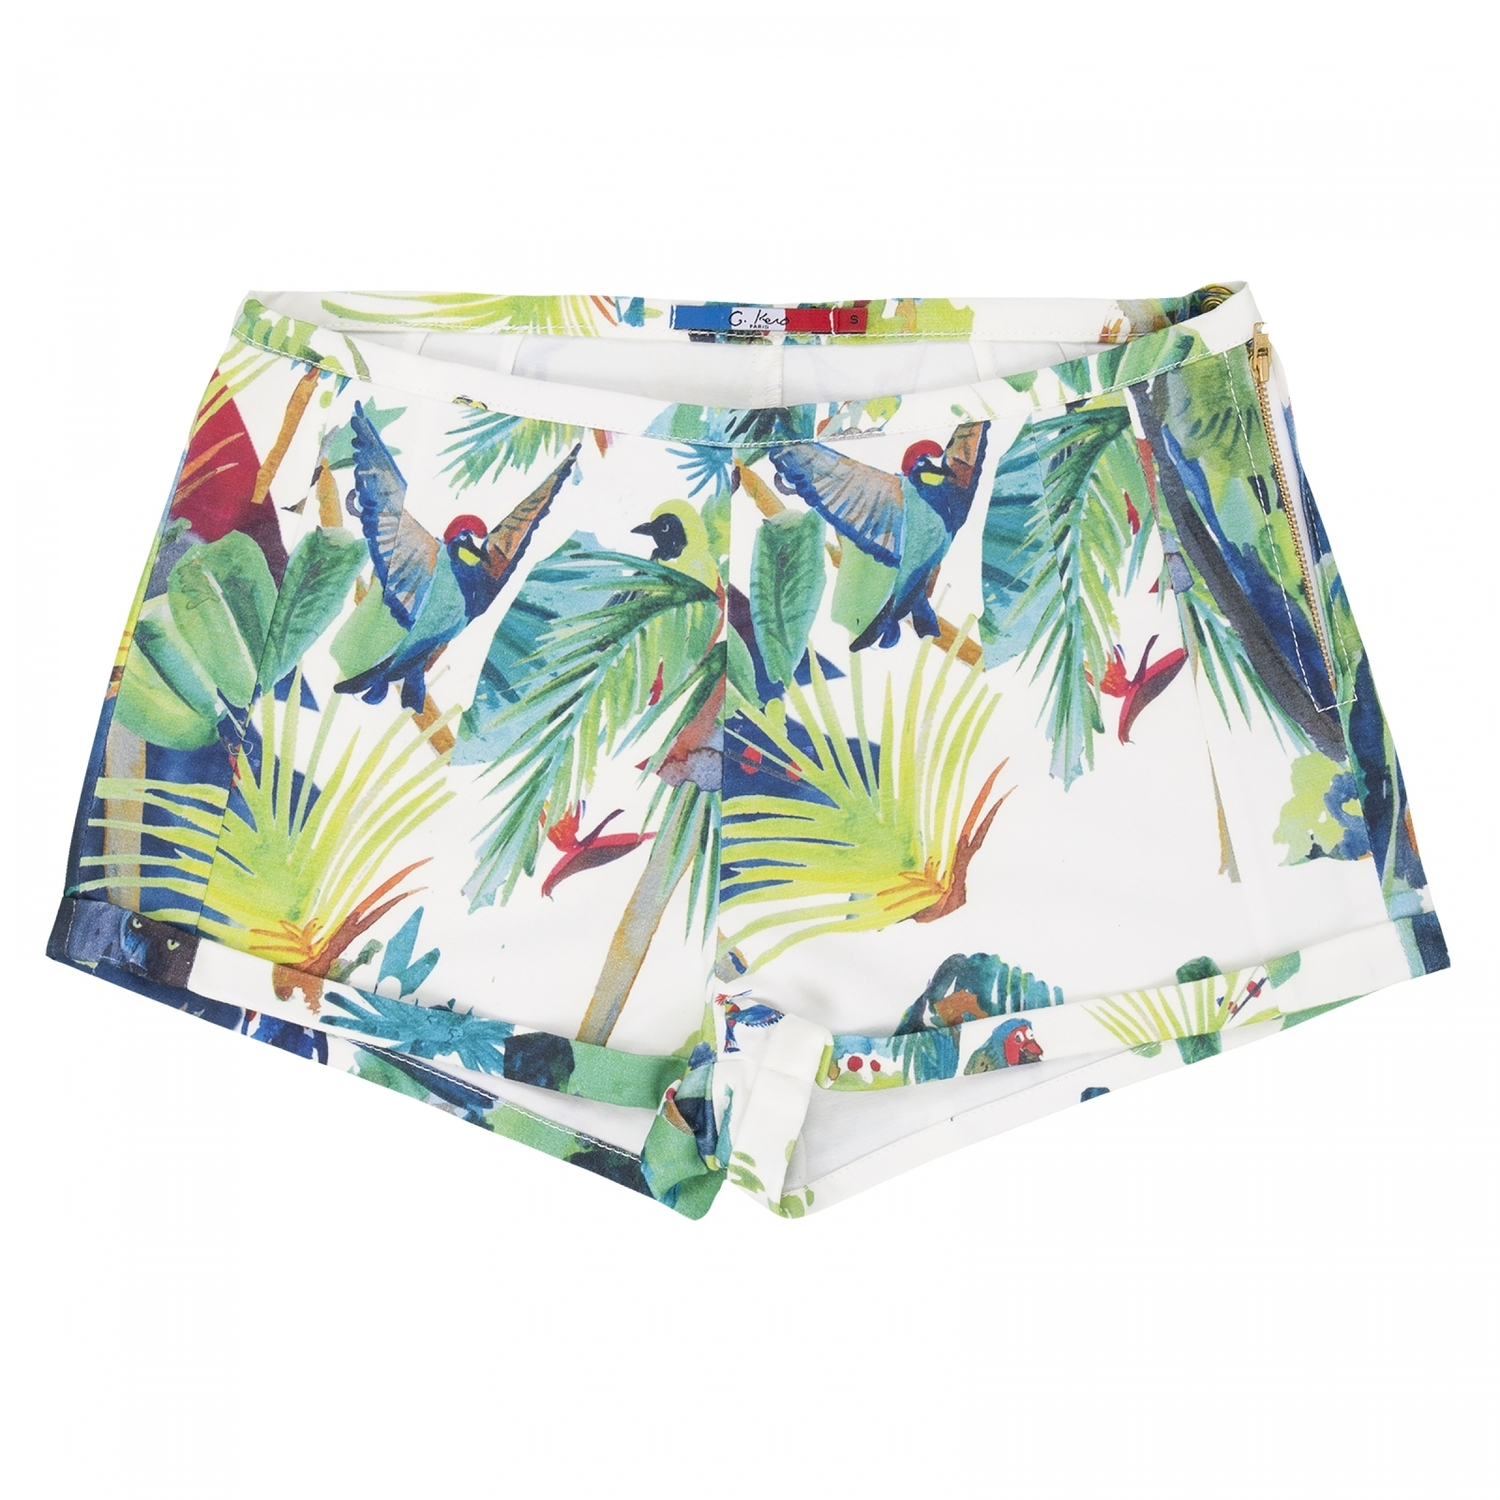 G. Kero Jungle Shorts